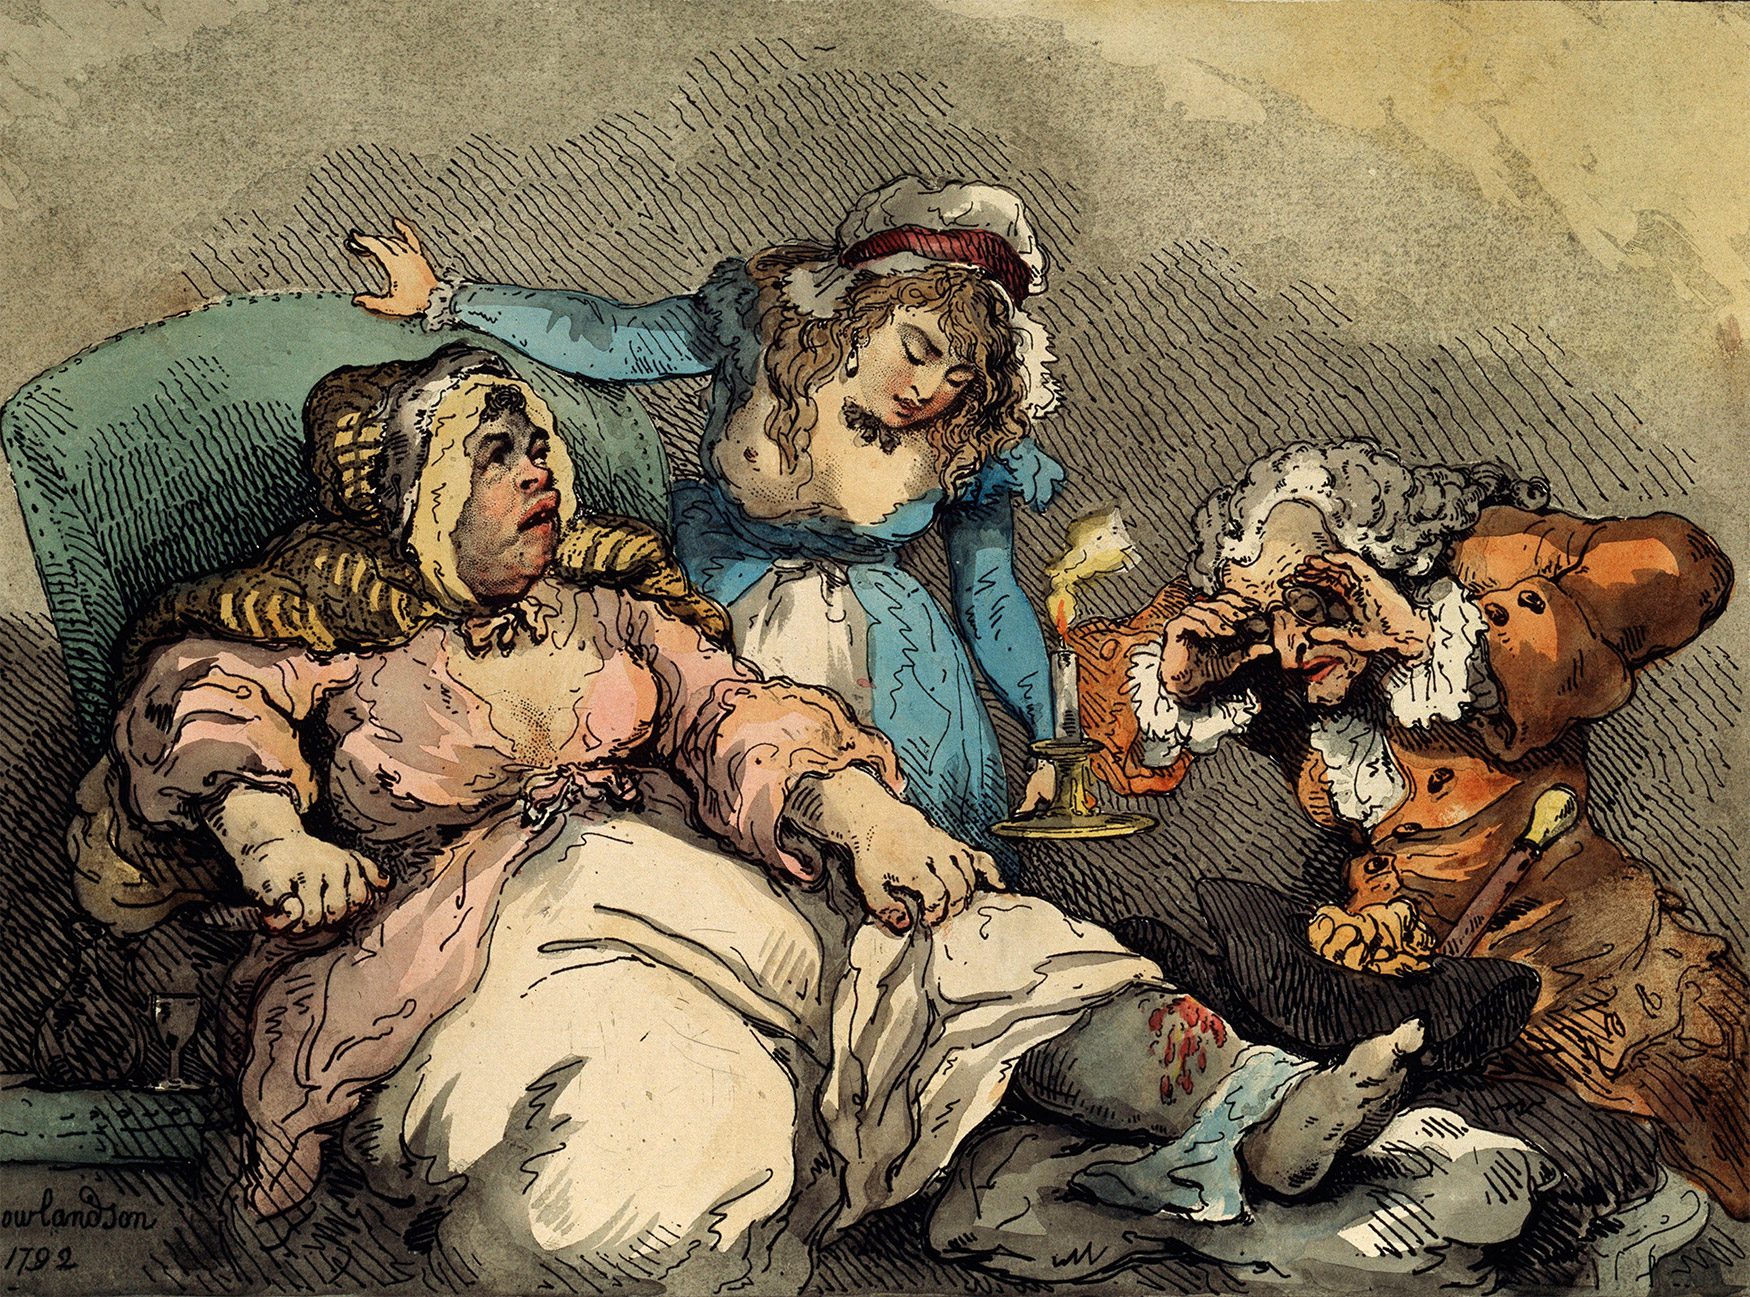 'A Bawd on Her Last Legs', by Thomas Rowlandson, 1792.